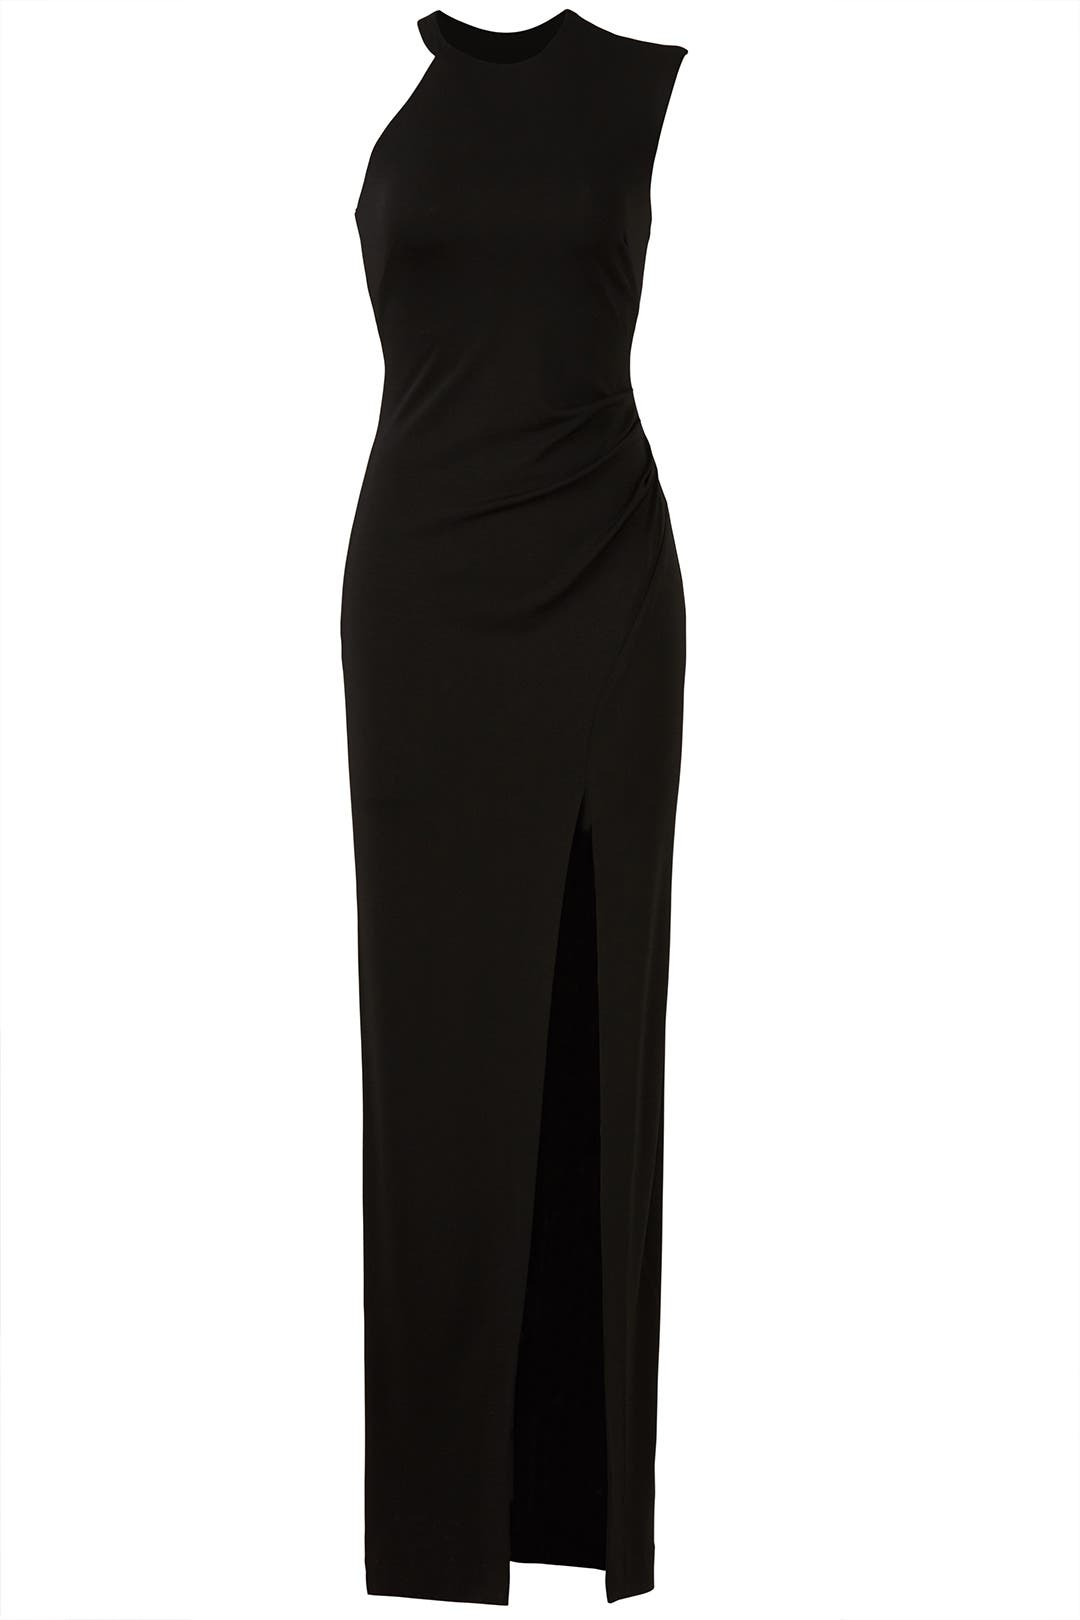 Black Ruched Gown by Nicole Miller for $50 - $70 | Rent the Runway